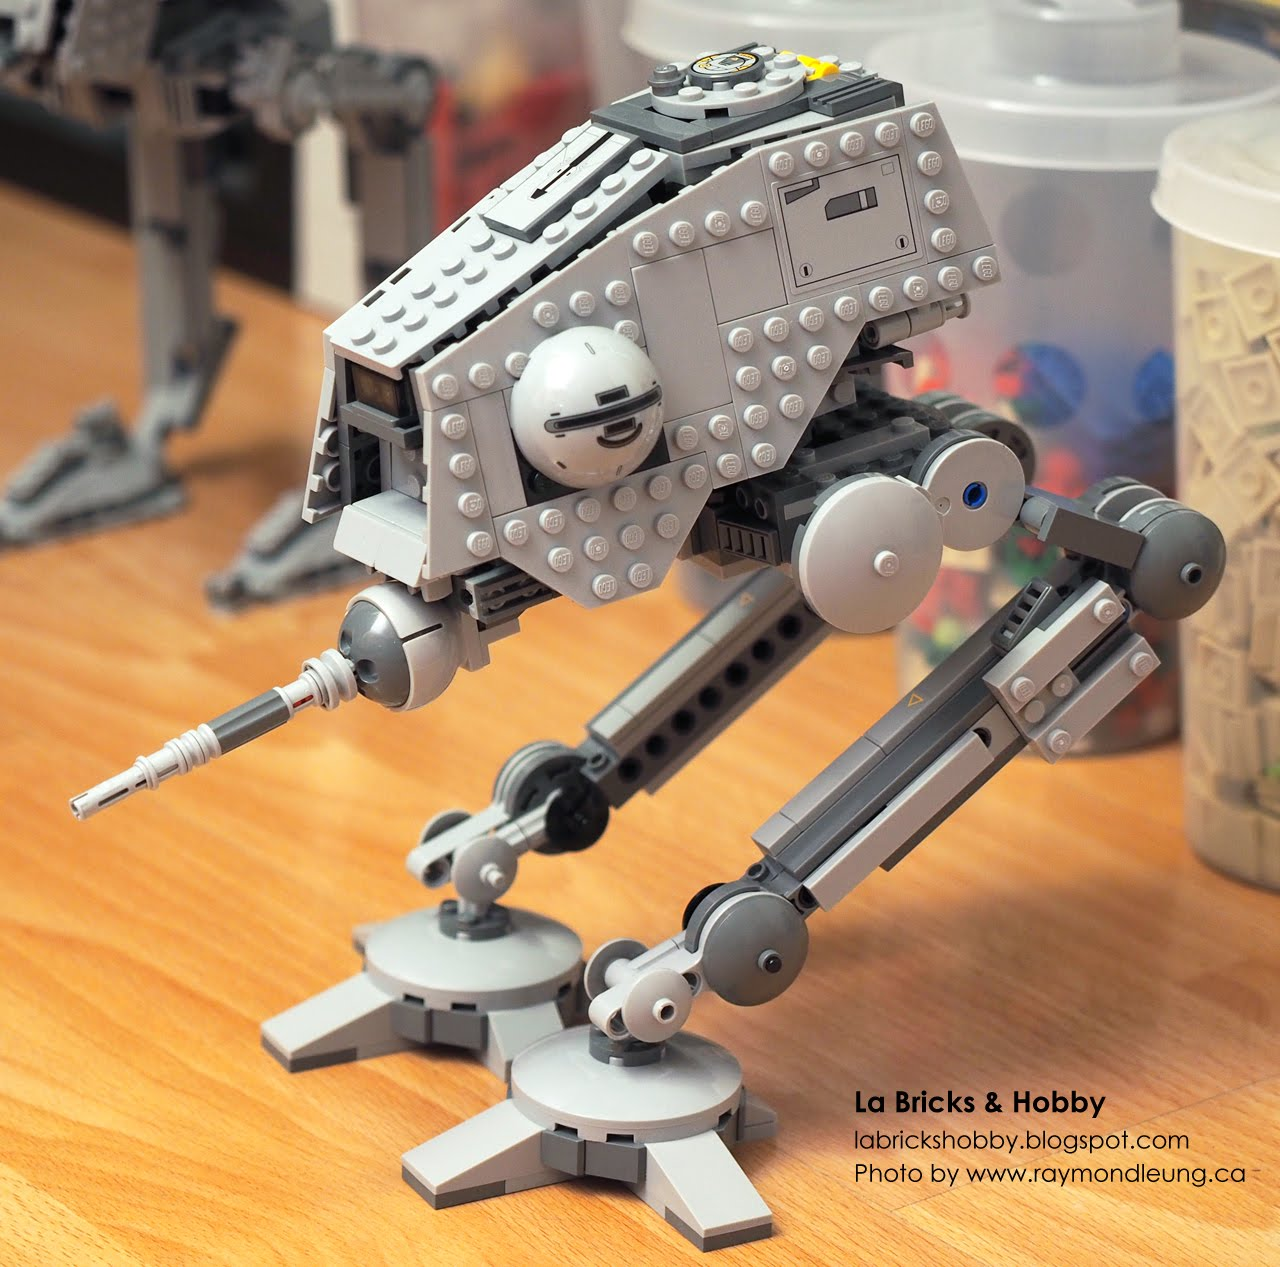 La Bricks & Hobby: LEGO Star Wars AT-DP Modification